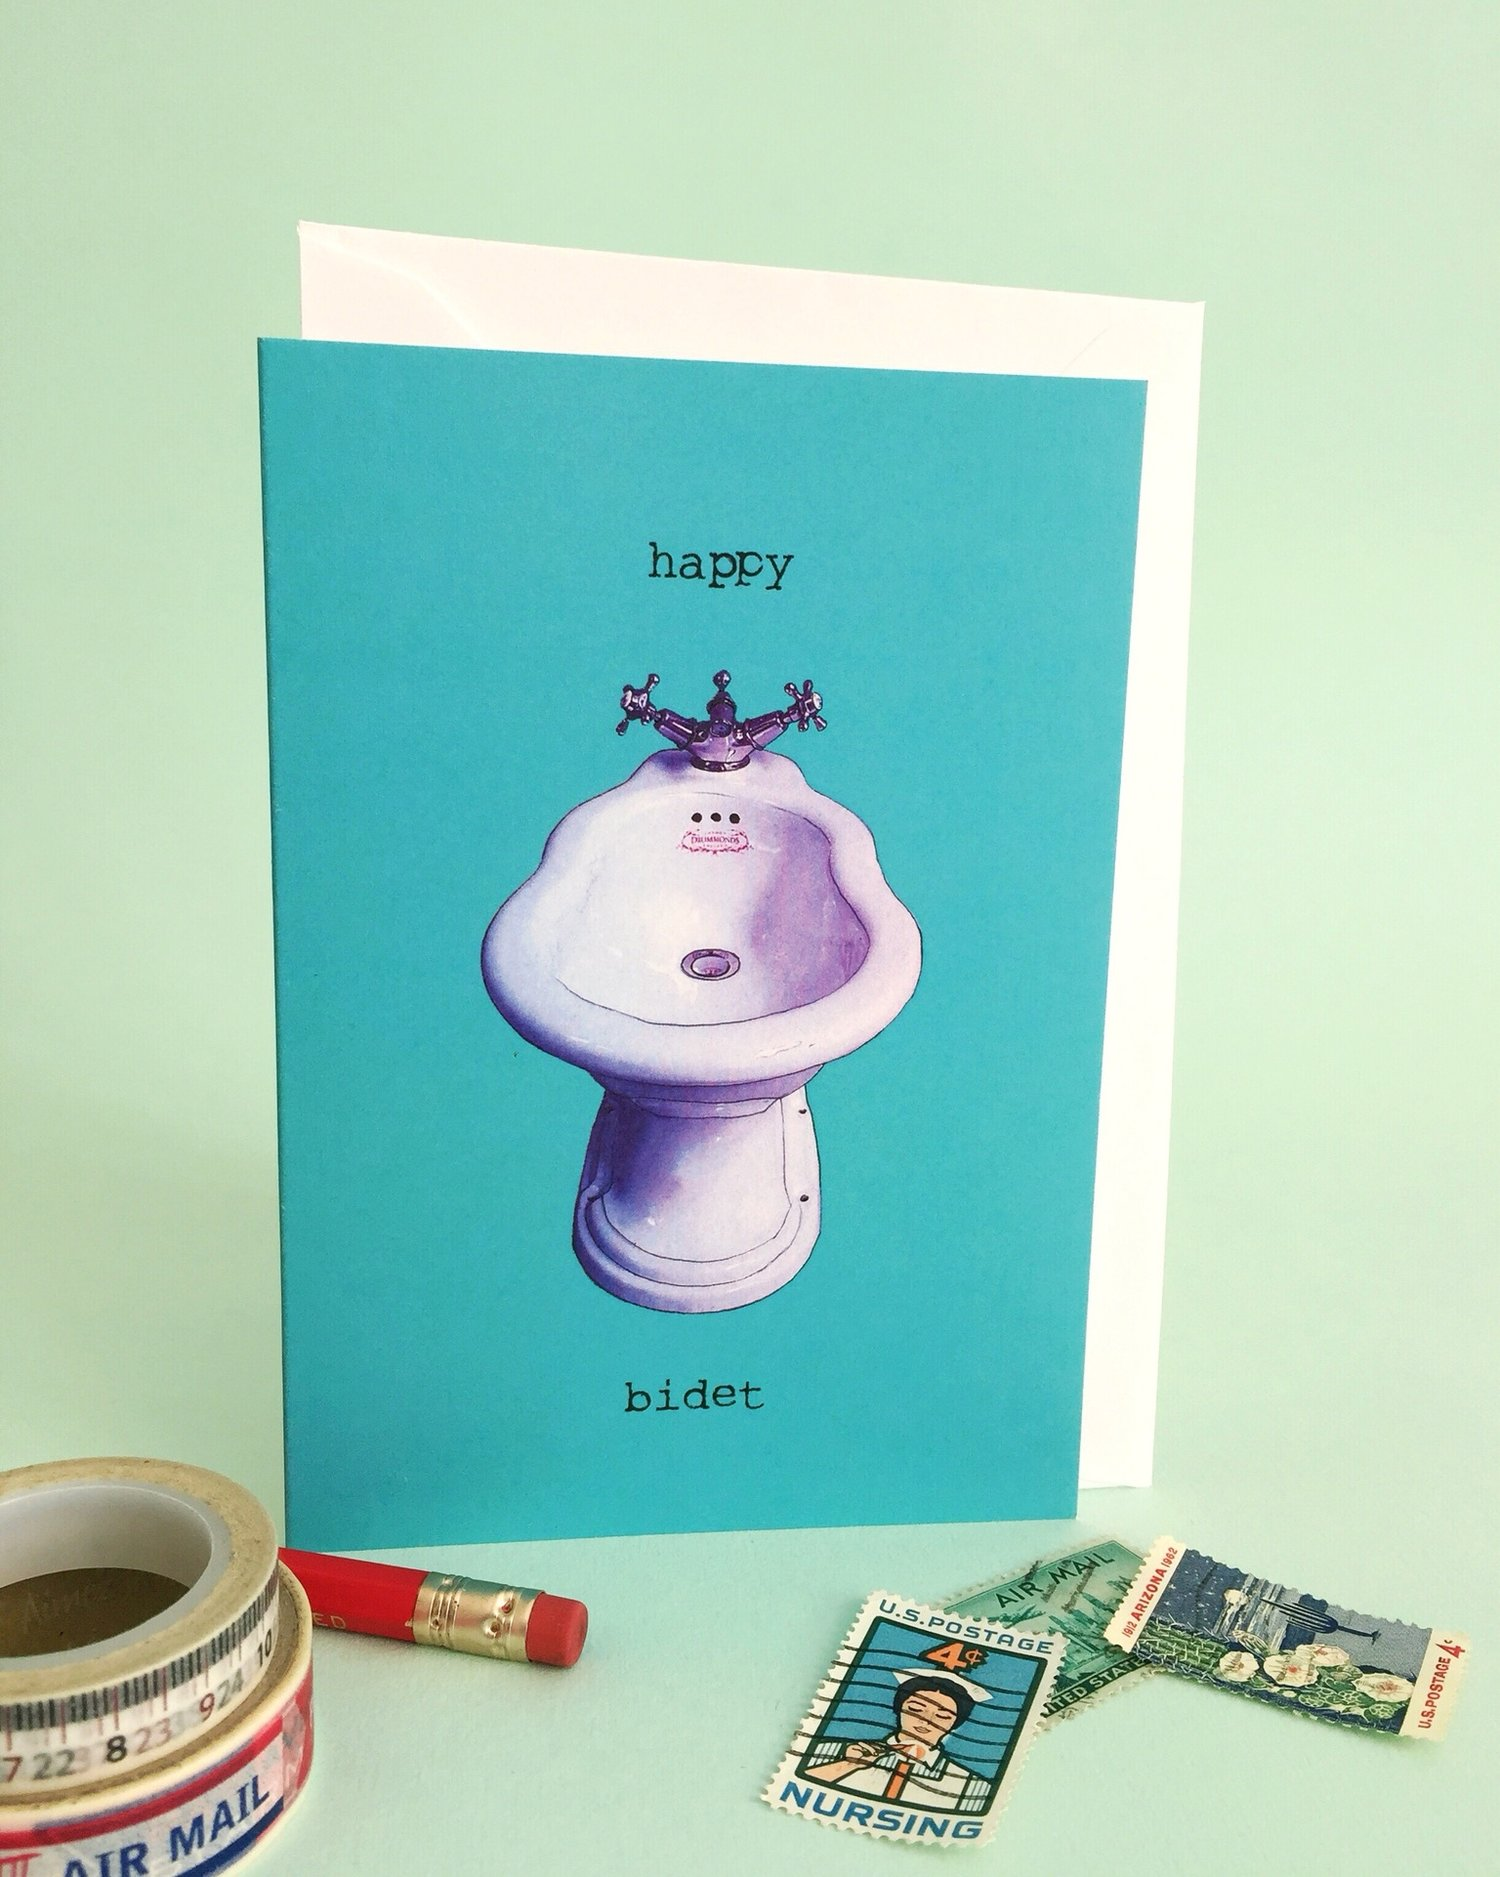 QUIRKY ILLUSTRATED CARDS